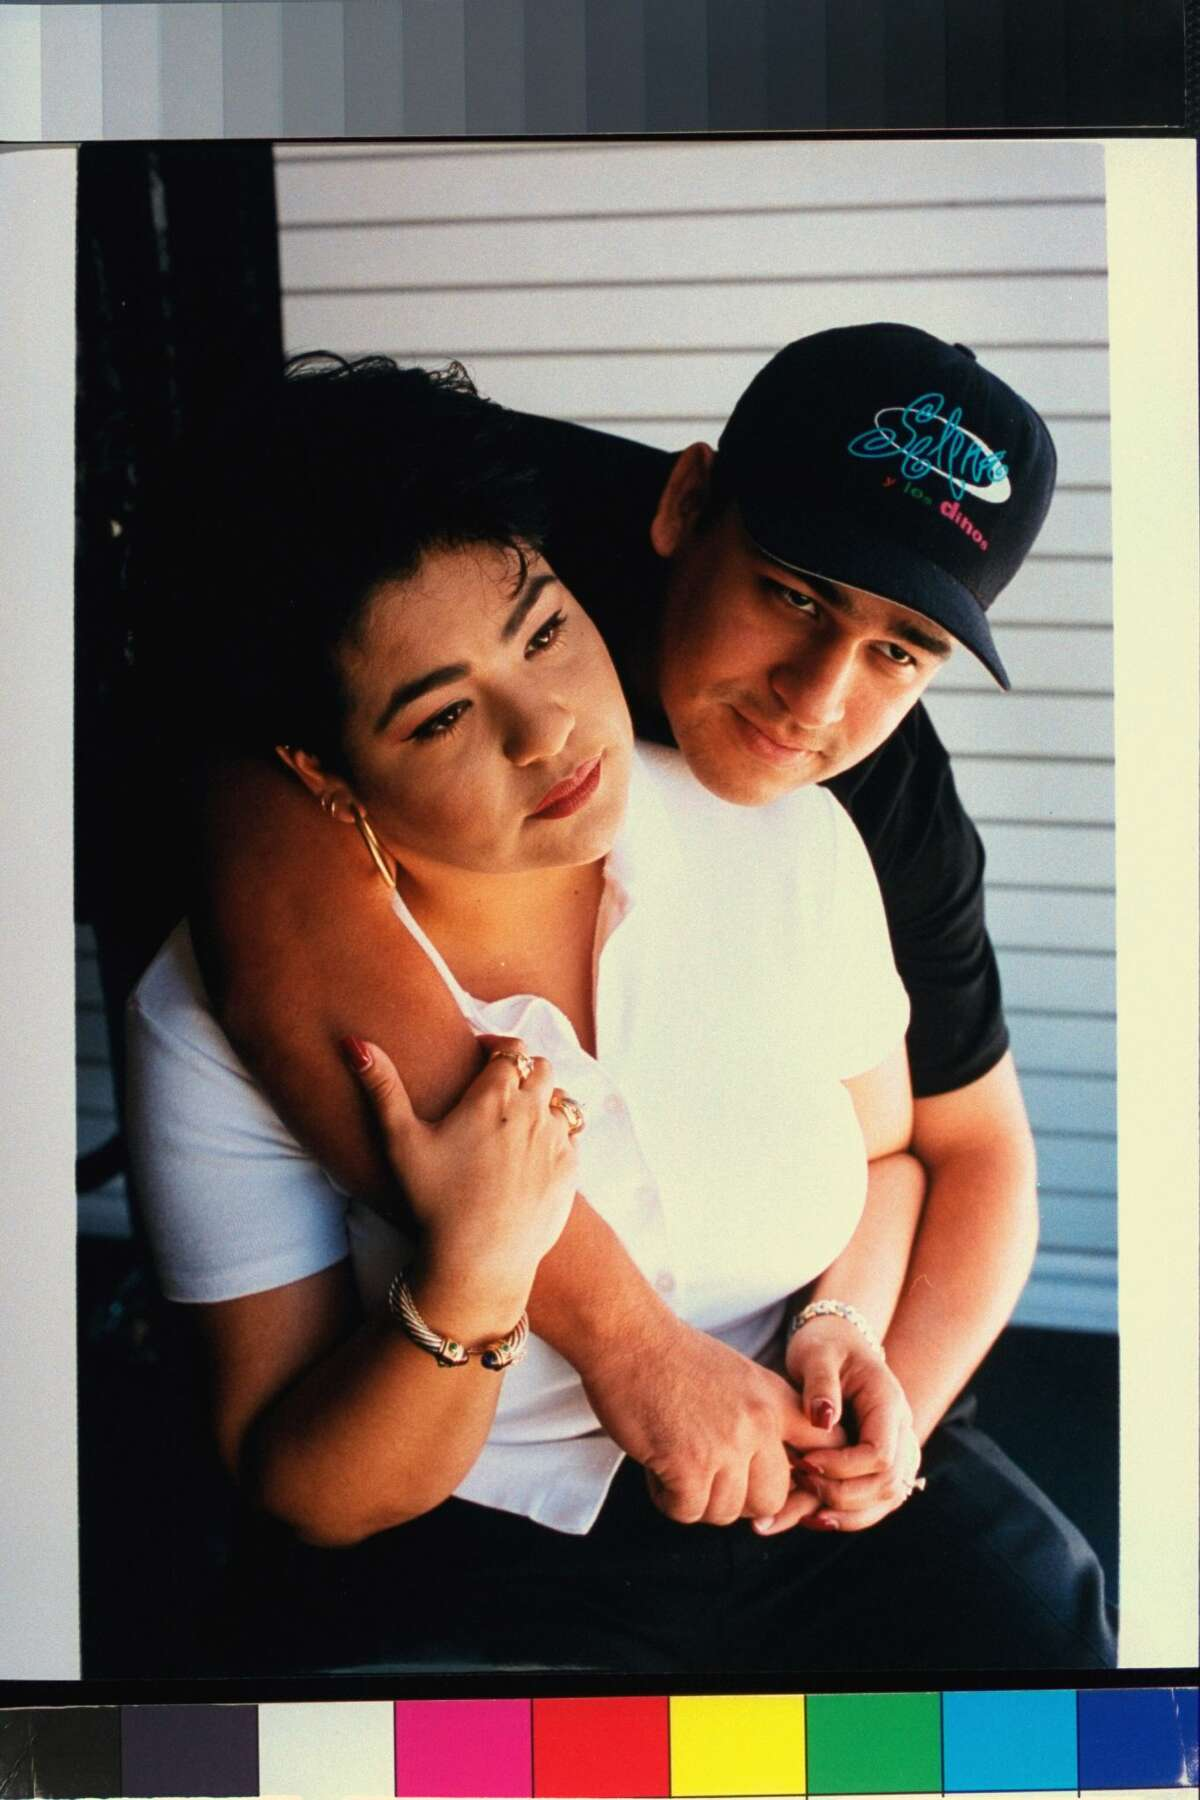 Chris Perez, husband of slain tejano singer Selena, posing w. arms around her sister Suzette Quintanilla. (Photo by Barbara Laing/Getty Images)